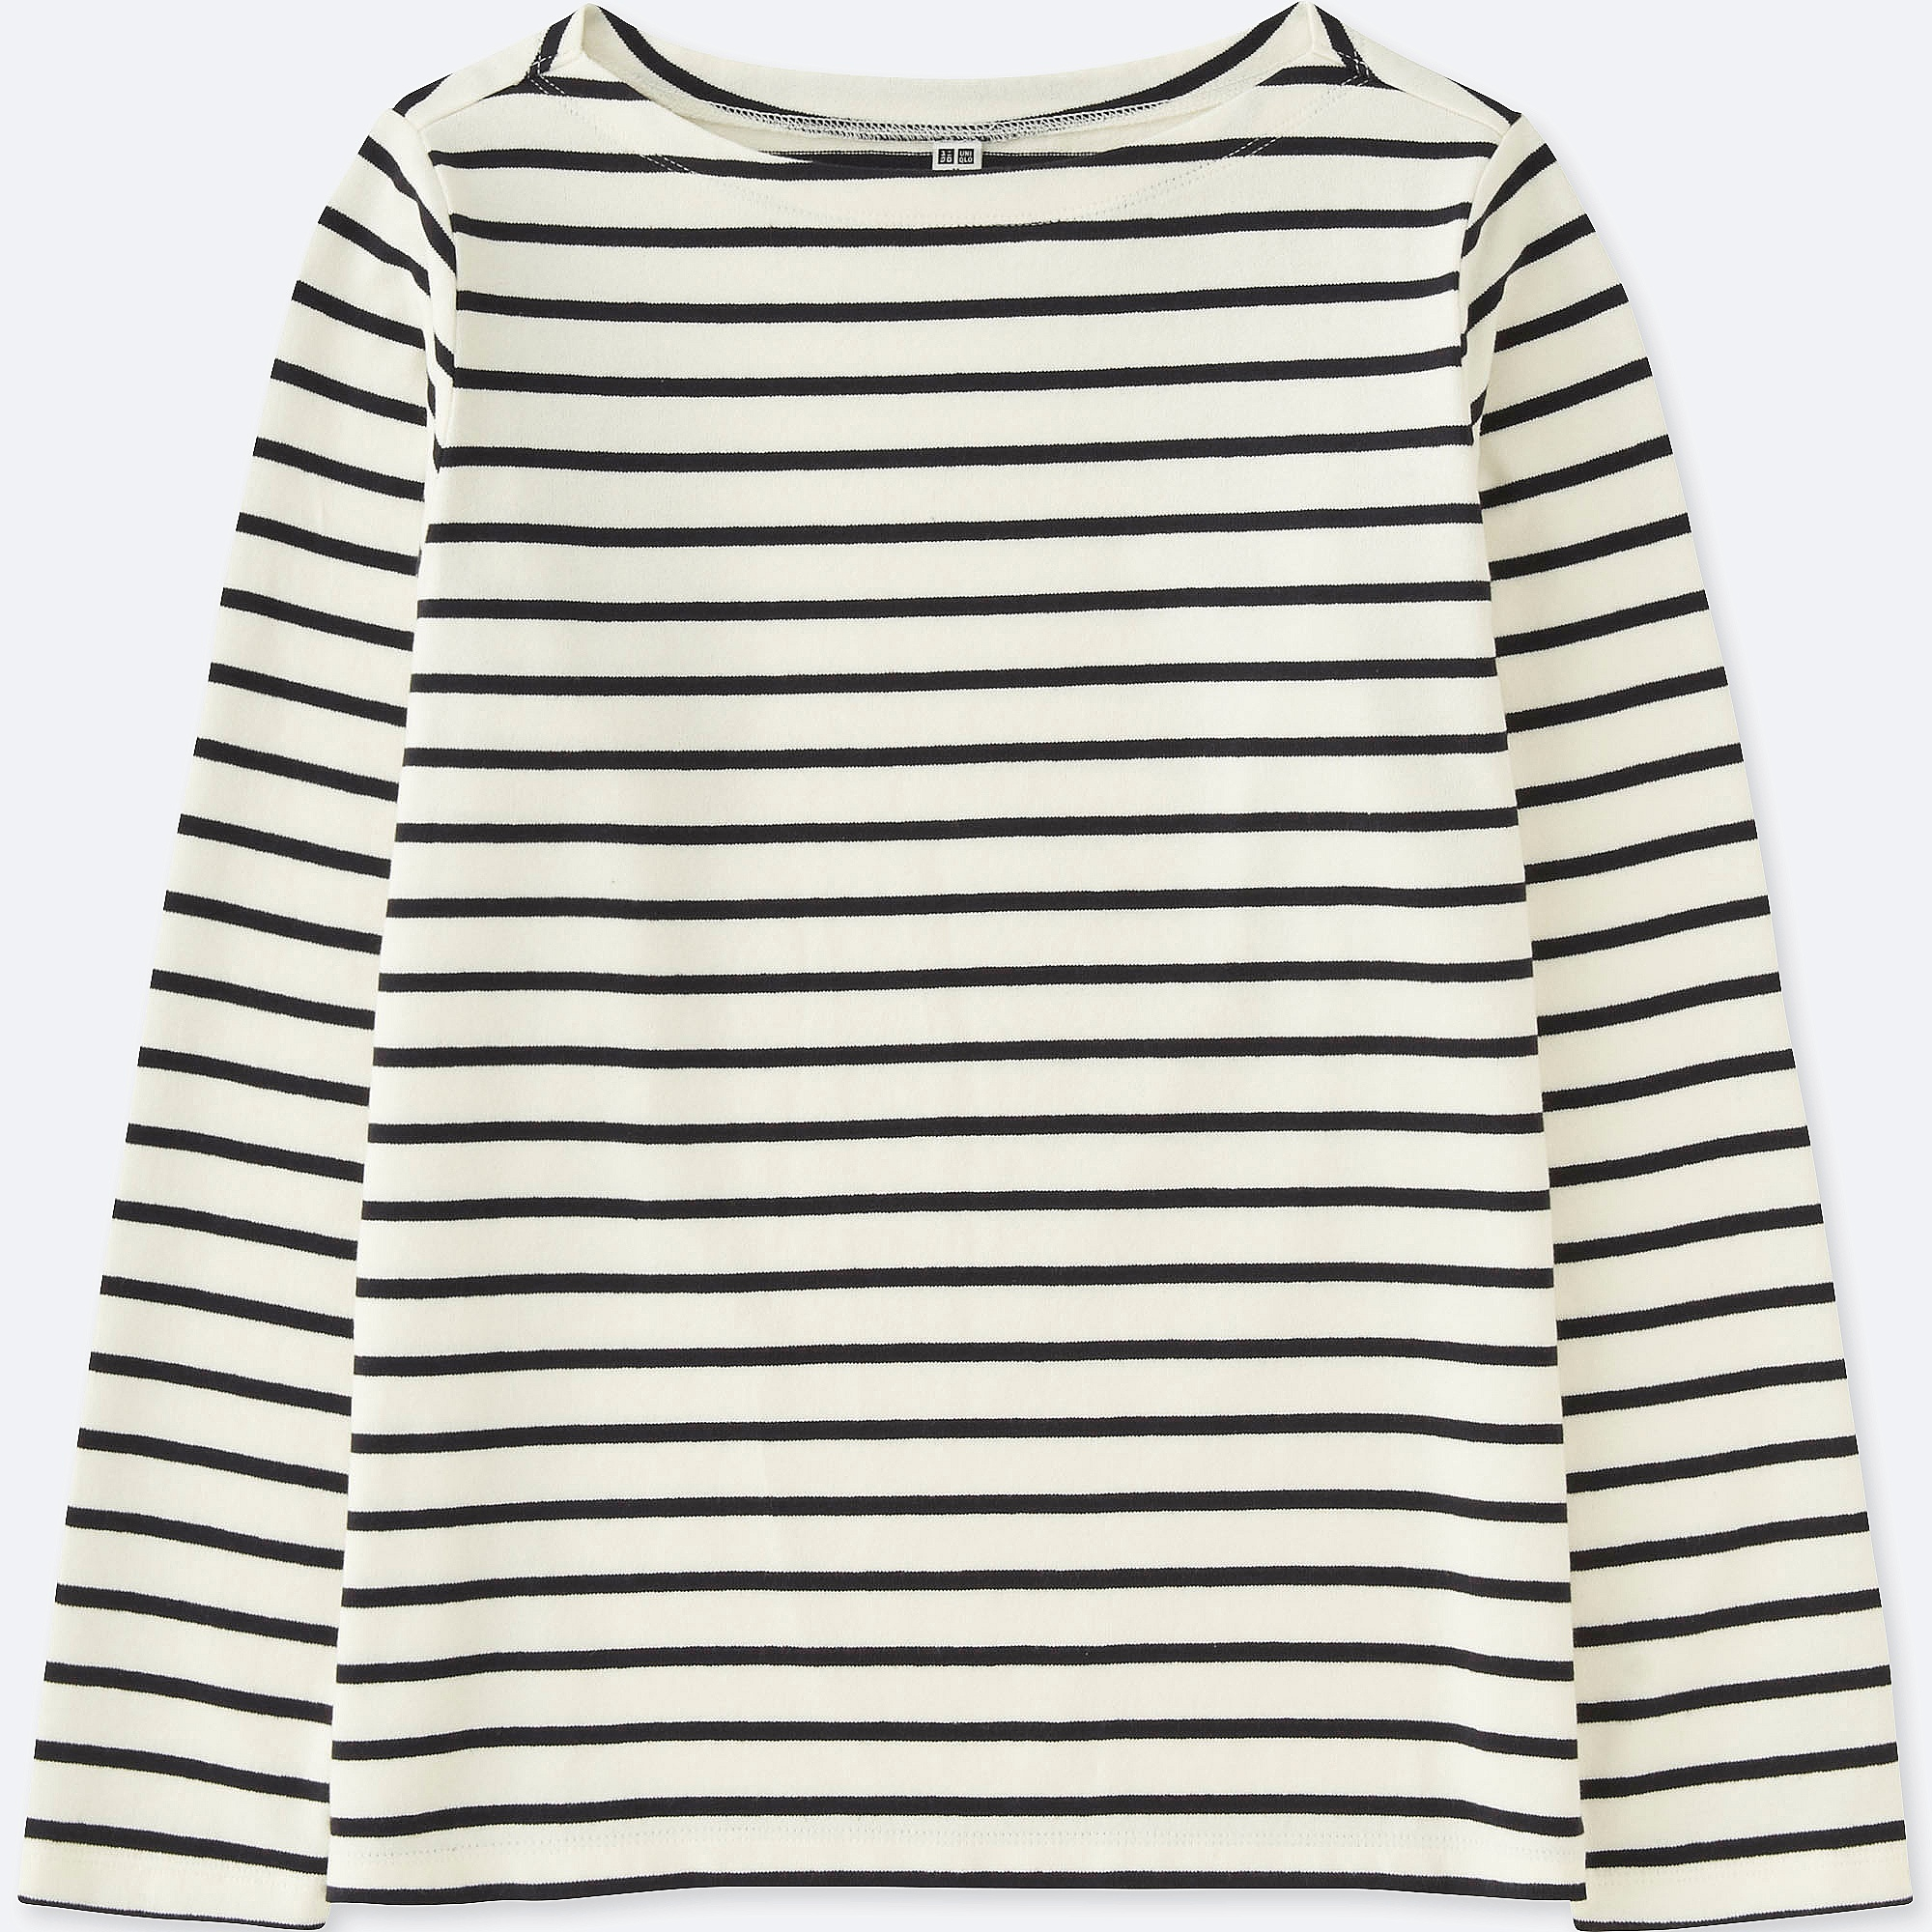 6704fe958d666 Uniqlo WOMEN STRIPED BOAT NECK LONG SLEEVE T-shirt at £7.9